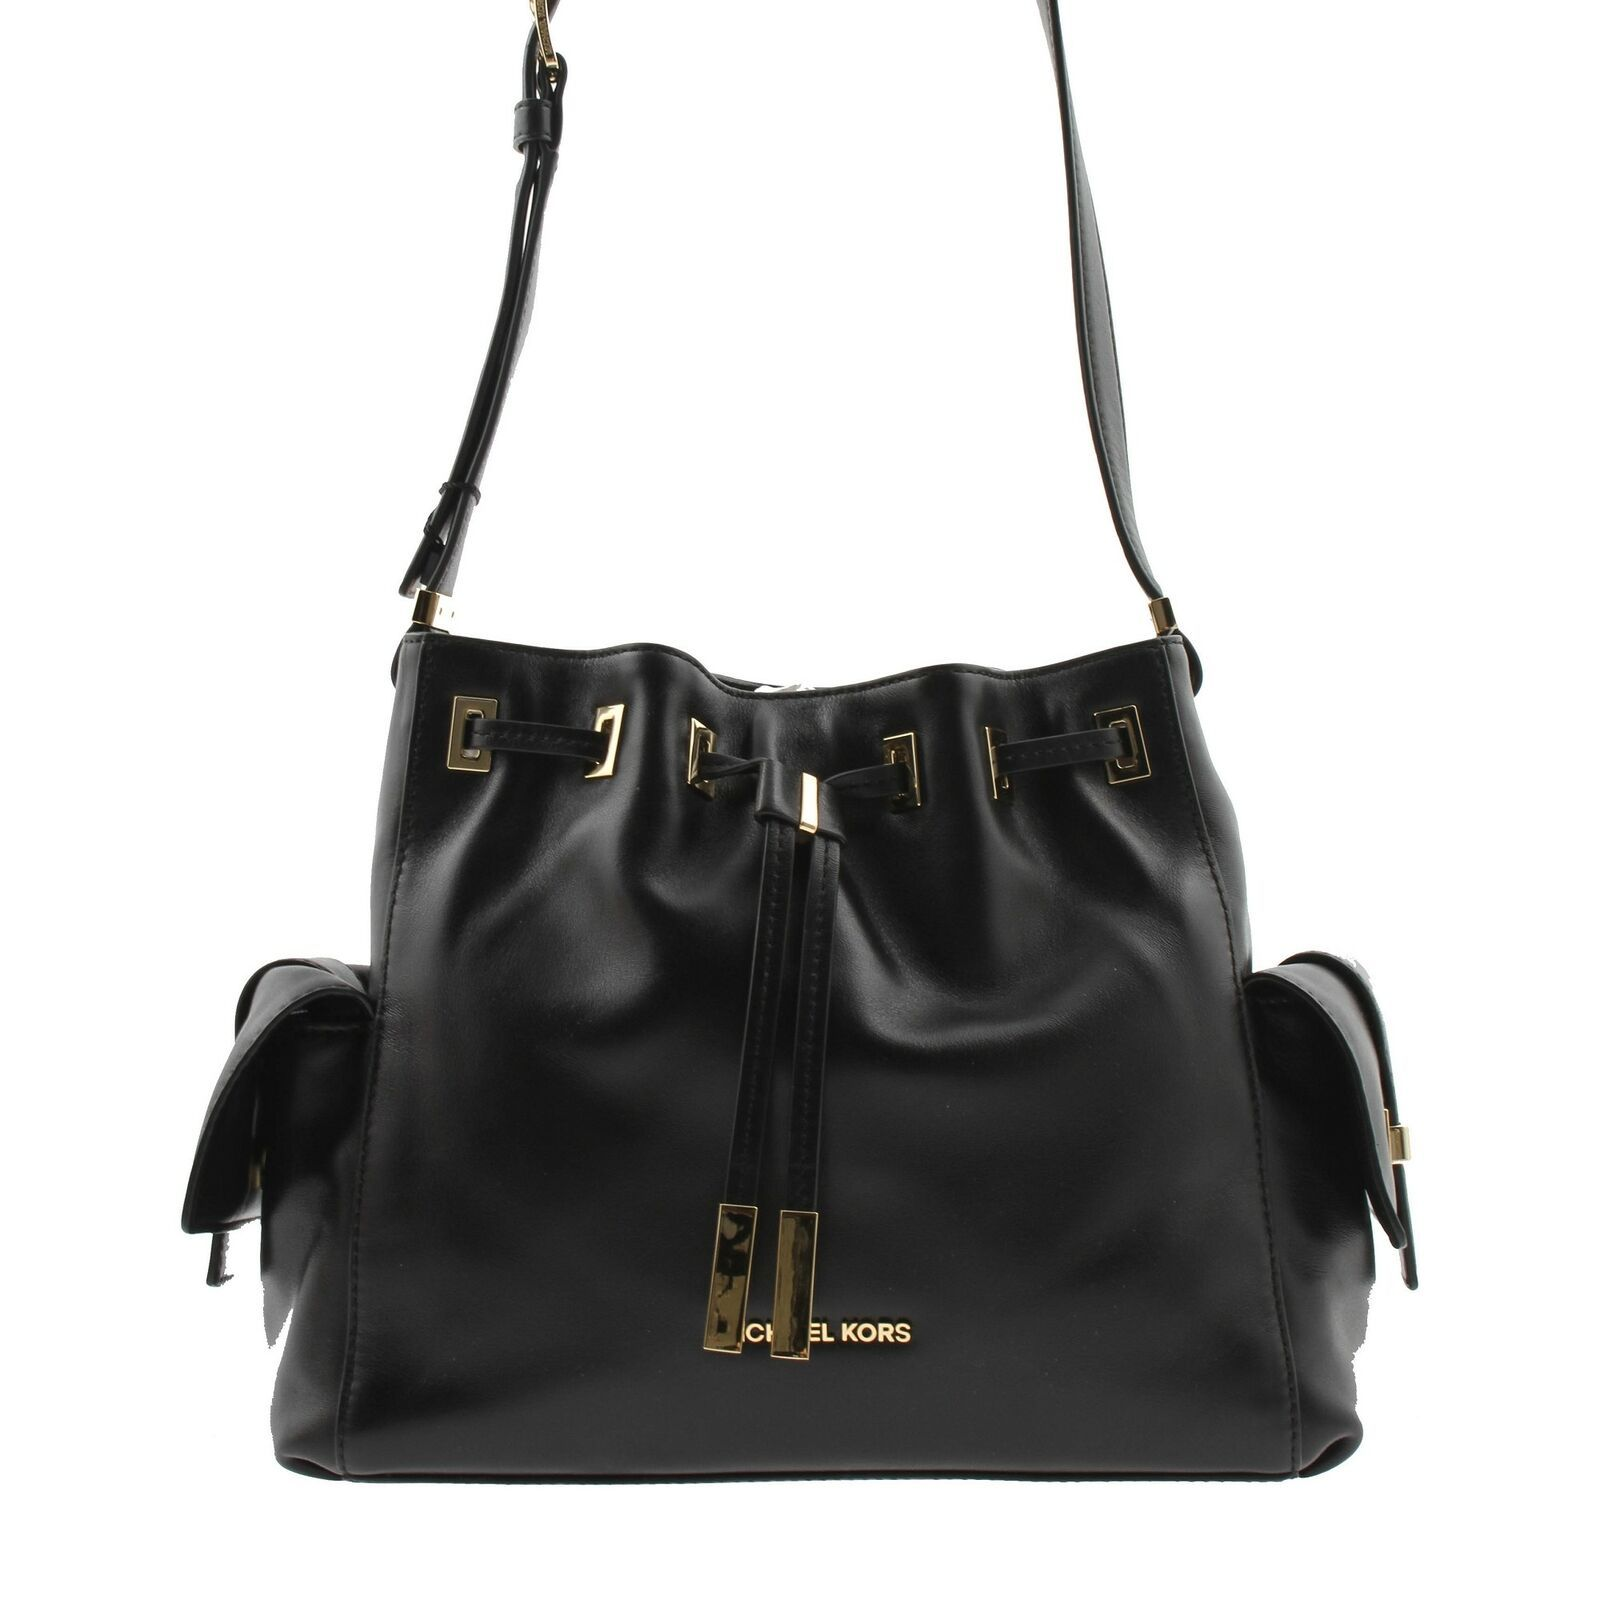 16b650303b1be3 NWT Authentic Michael Kors Marly Medium Drawstring Black Crossbody  30T5GYMM2L - $277.20